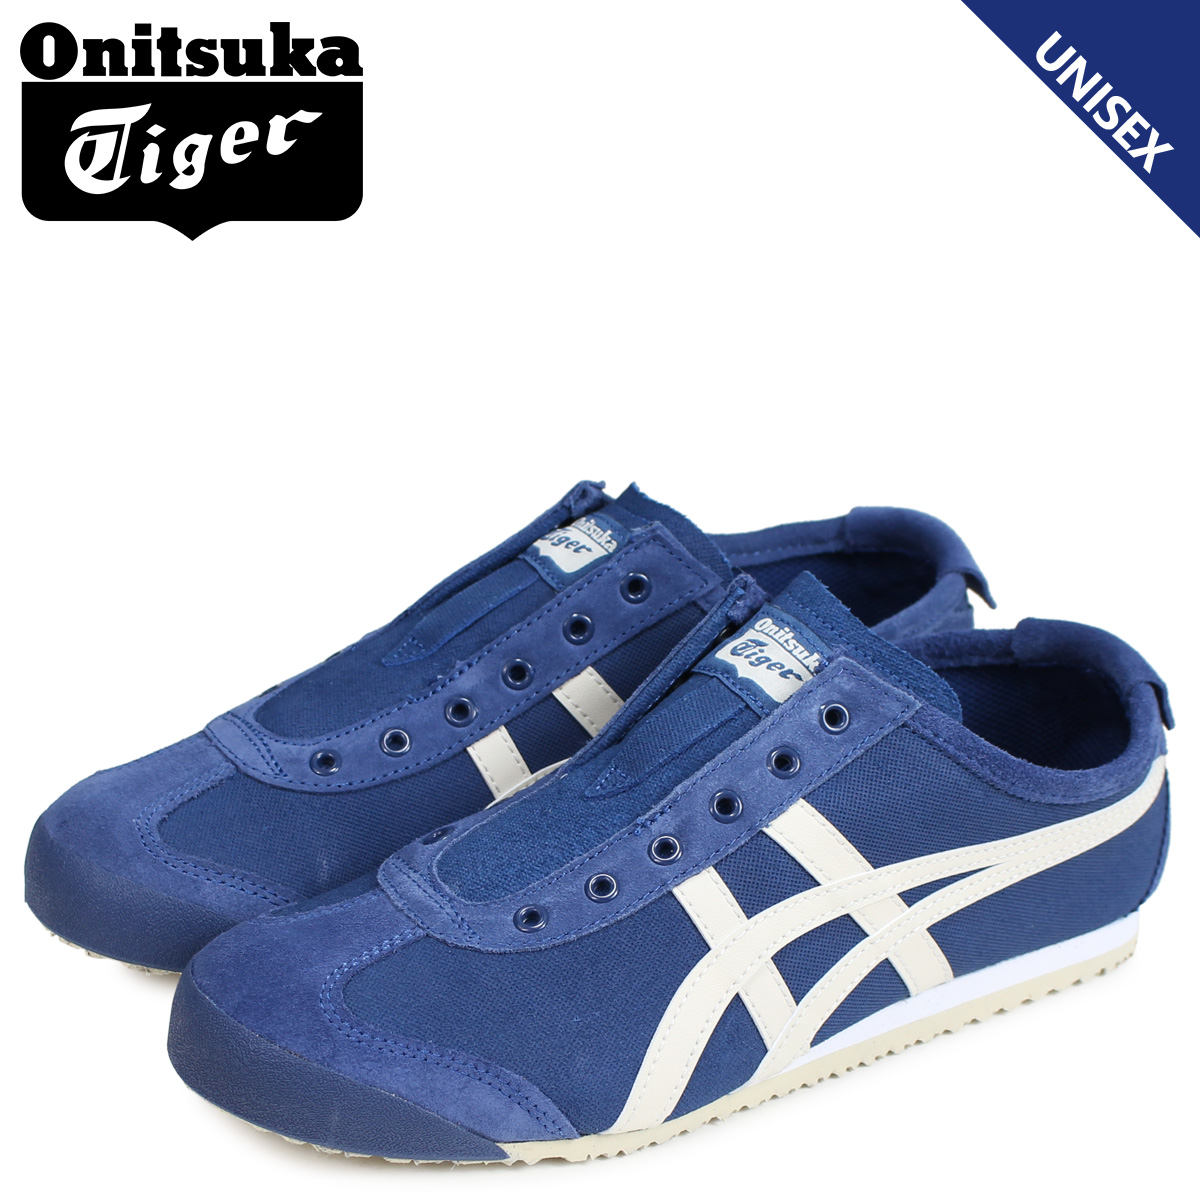 competitive price 0608e a9bbe Onitsuka Tiger Mexico 66 slip-ons Onitsuka tiger MEXICO 66 SLIP-ON men gap  Dis sneakers 1183A042-400 navy